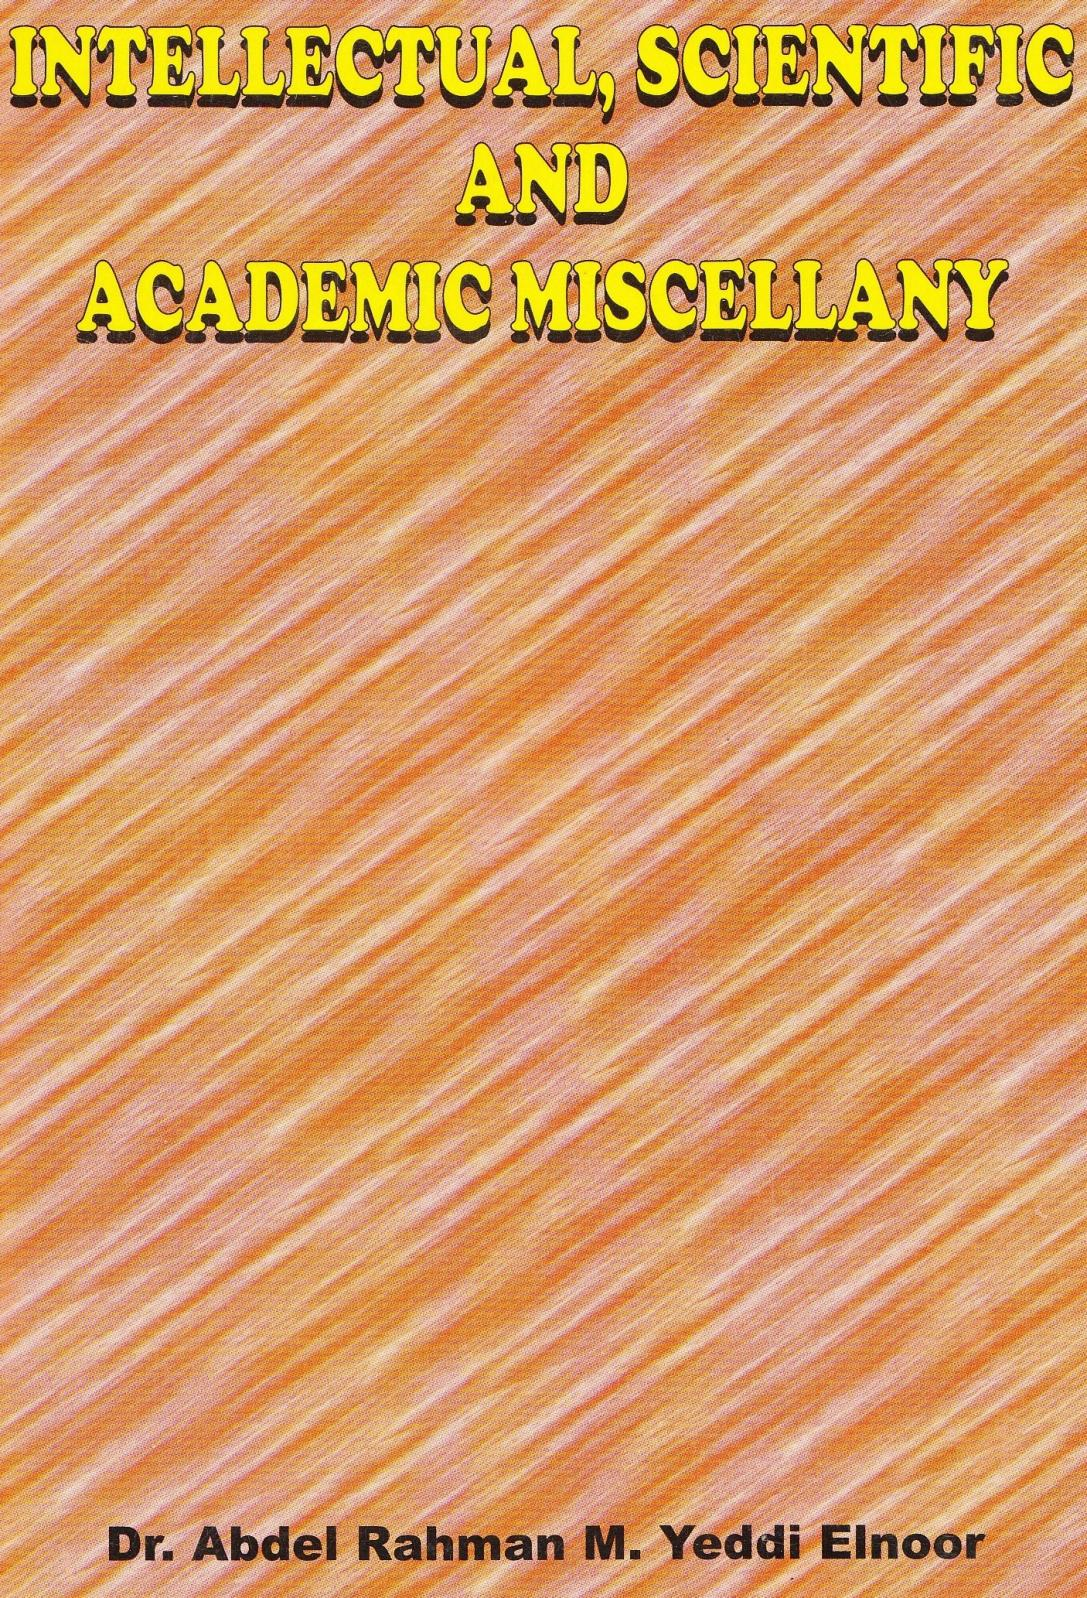 de021fcb6 Calaméo - Intellectual, Scientific and Academic Miscellany Pdf